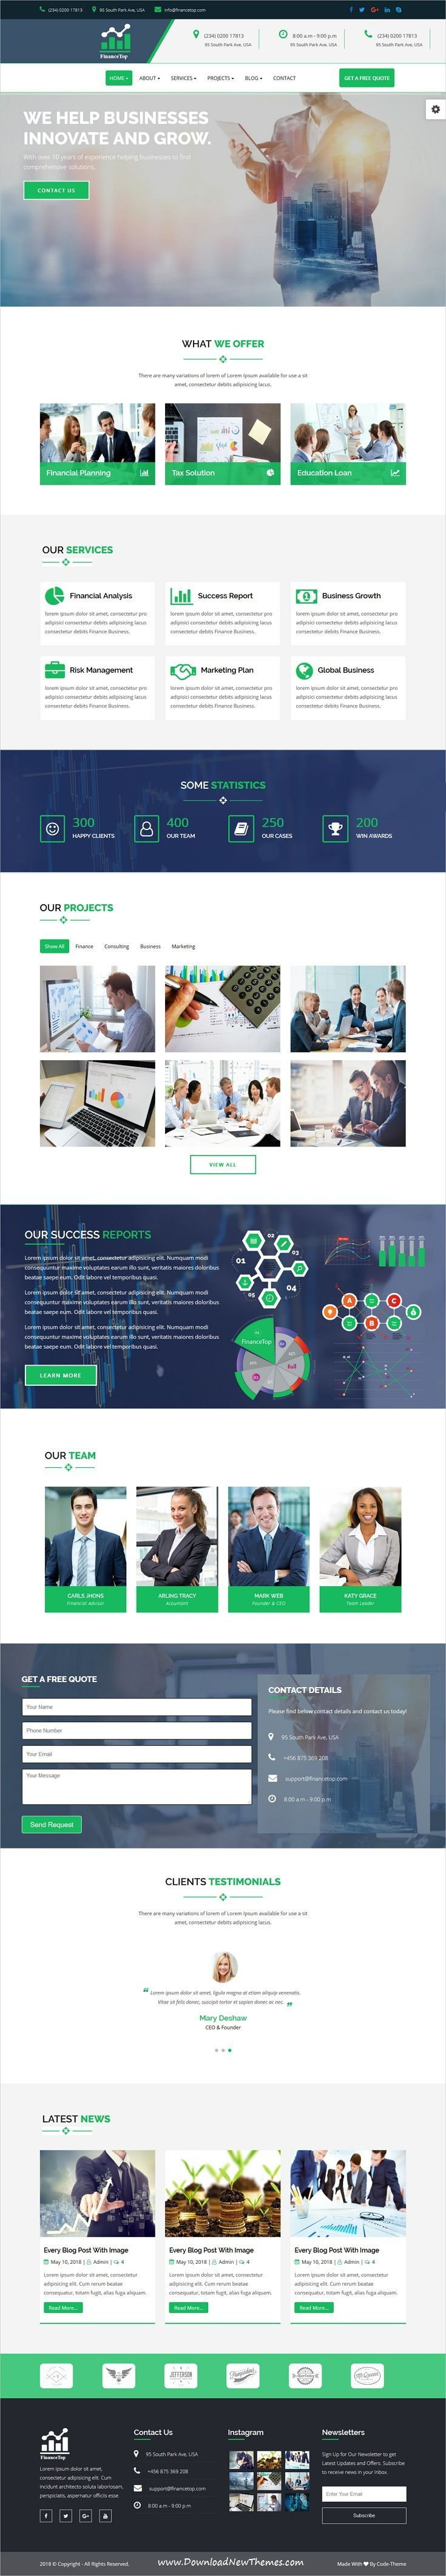 FinanceTop is clean and modern design 6in1 responsive #bootstrap HTML template for #business consulting and #finance agency #website to live preview & download click on image or Visit  #FinanceTemplate